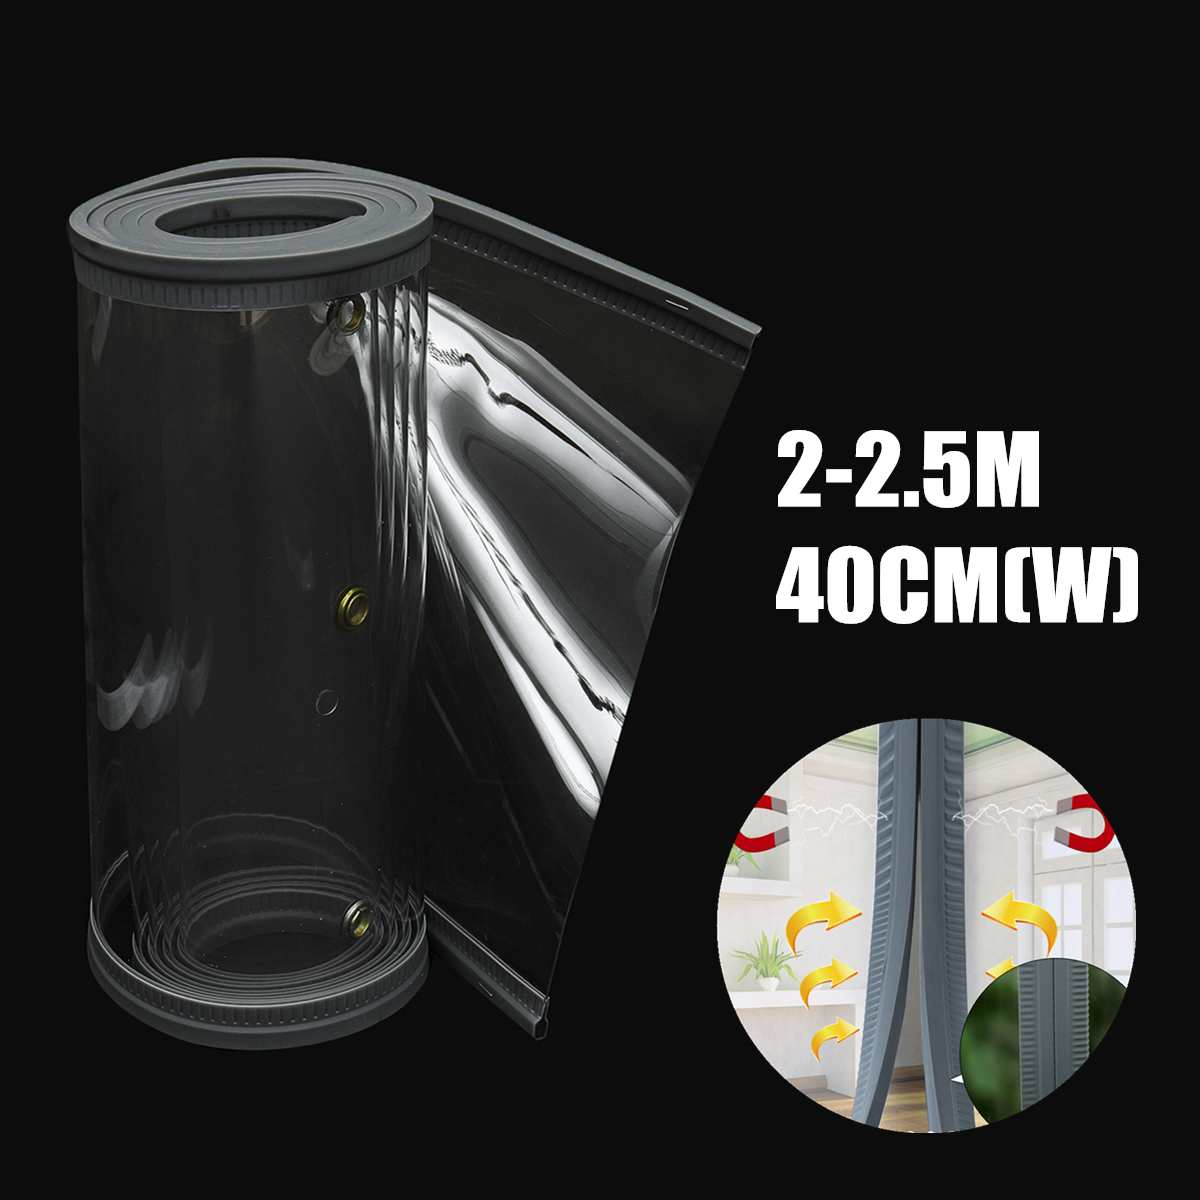 Clear Flexible PVC Winter Warm Door Window Curtain Strip Magnetic Closing Fly Insect Bug Screen Modern Home Kitchen CurtainsClear Flexible PVC Winter Warm Door Window Curtain Strip Magnetic Closing Fly Insect Bug Screen Modern Home Kitchen Curtains